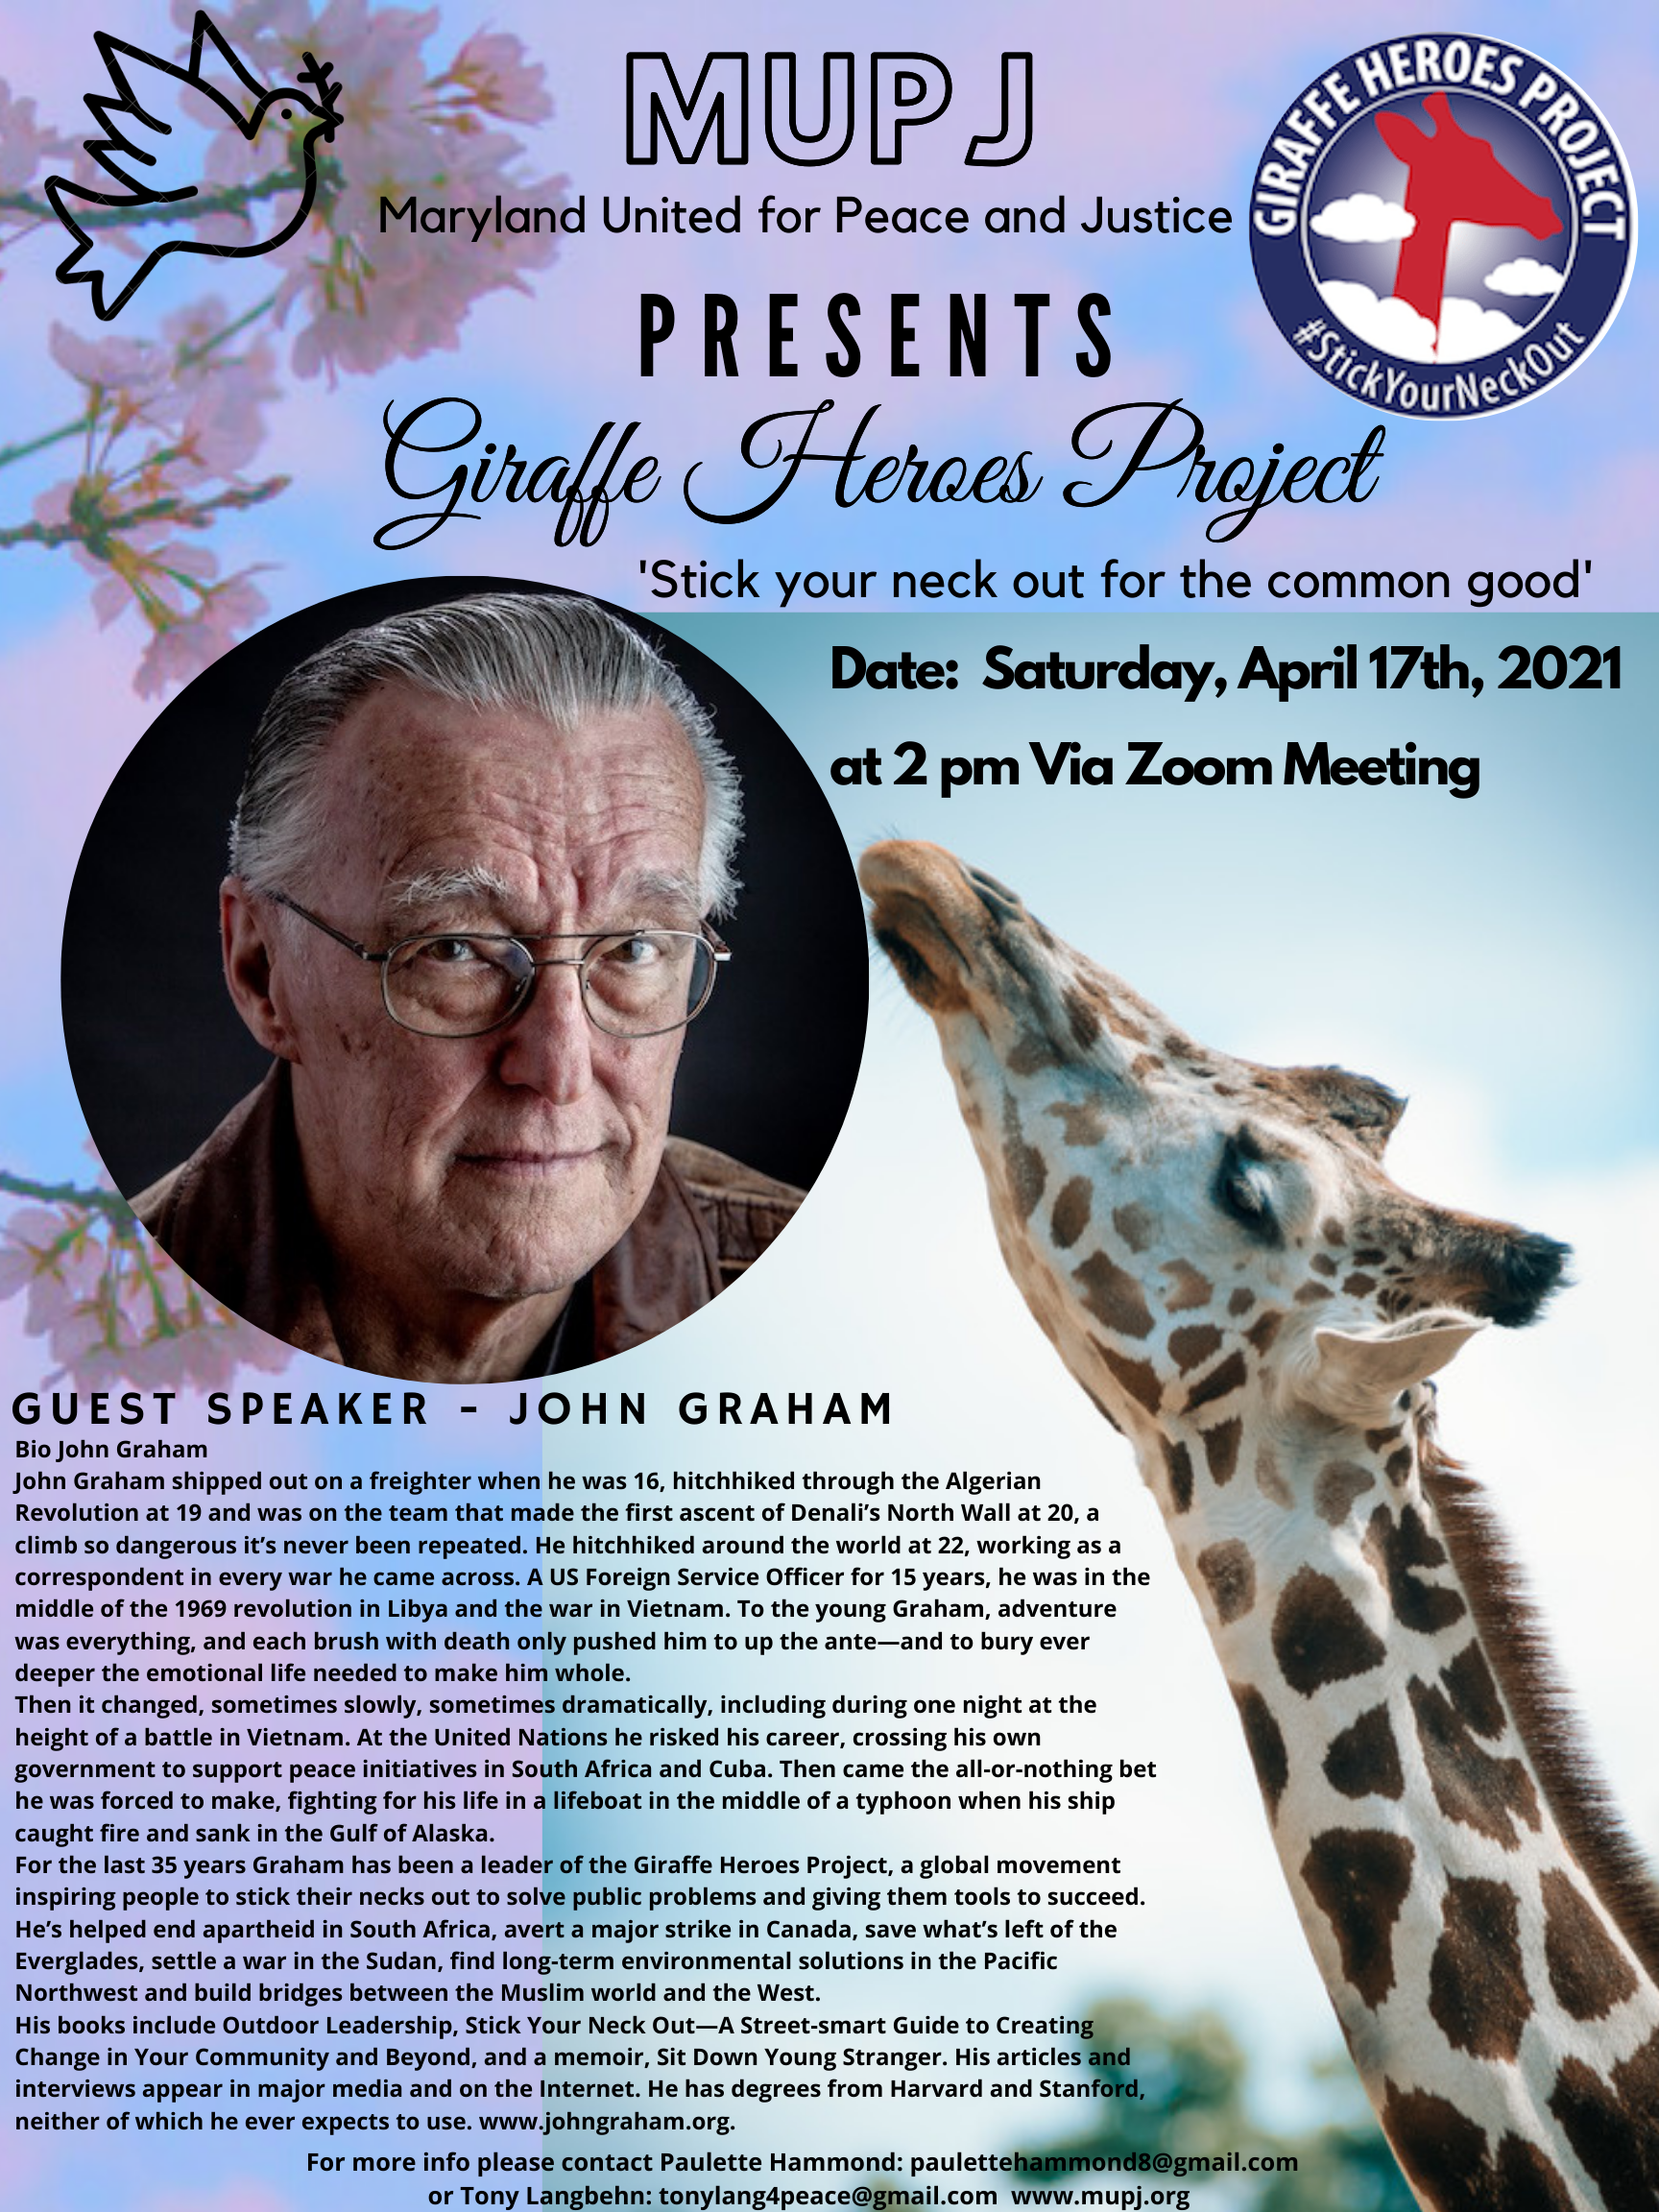 'Stick Your Neck Out For The Common Good'. Maryland United for Peace and Justice MUPJ presents Guest Speaker John Graham to give a talk about the Giraffe Heroes Project on April 27th at 2pm